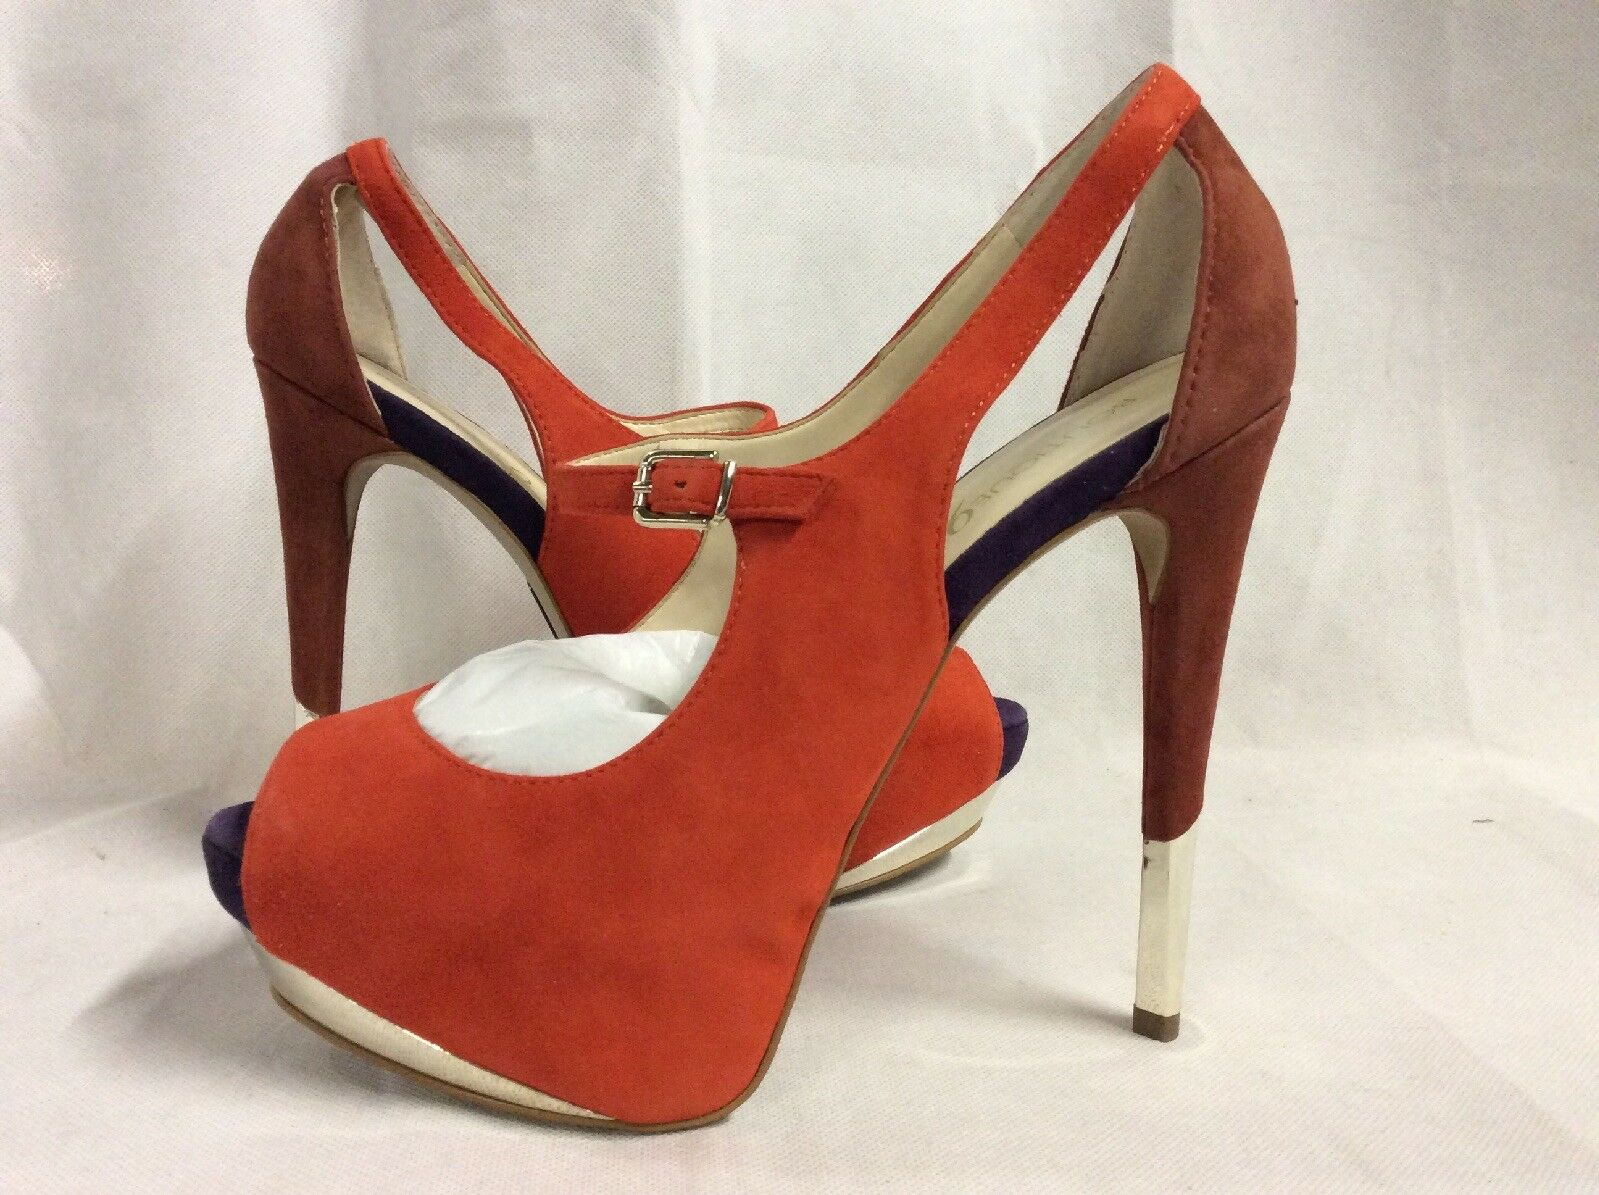 Boutique 9 damen's Nickeya Nickeya Nickeya Pump, Orange, Größe 8 M ea7ab5